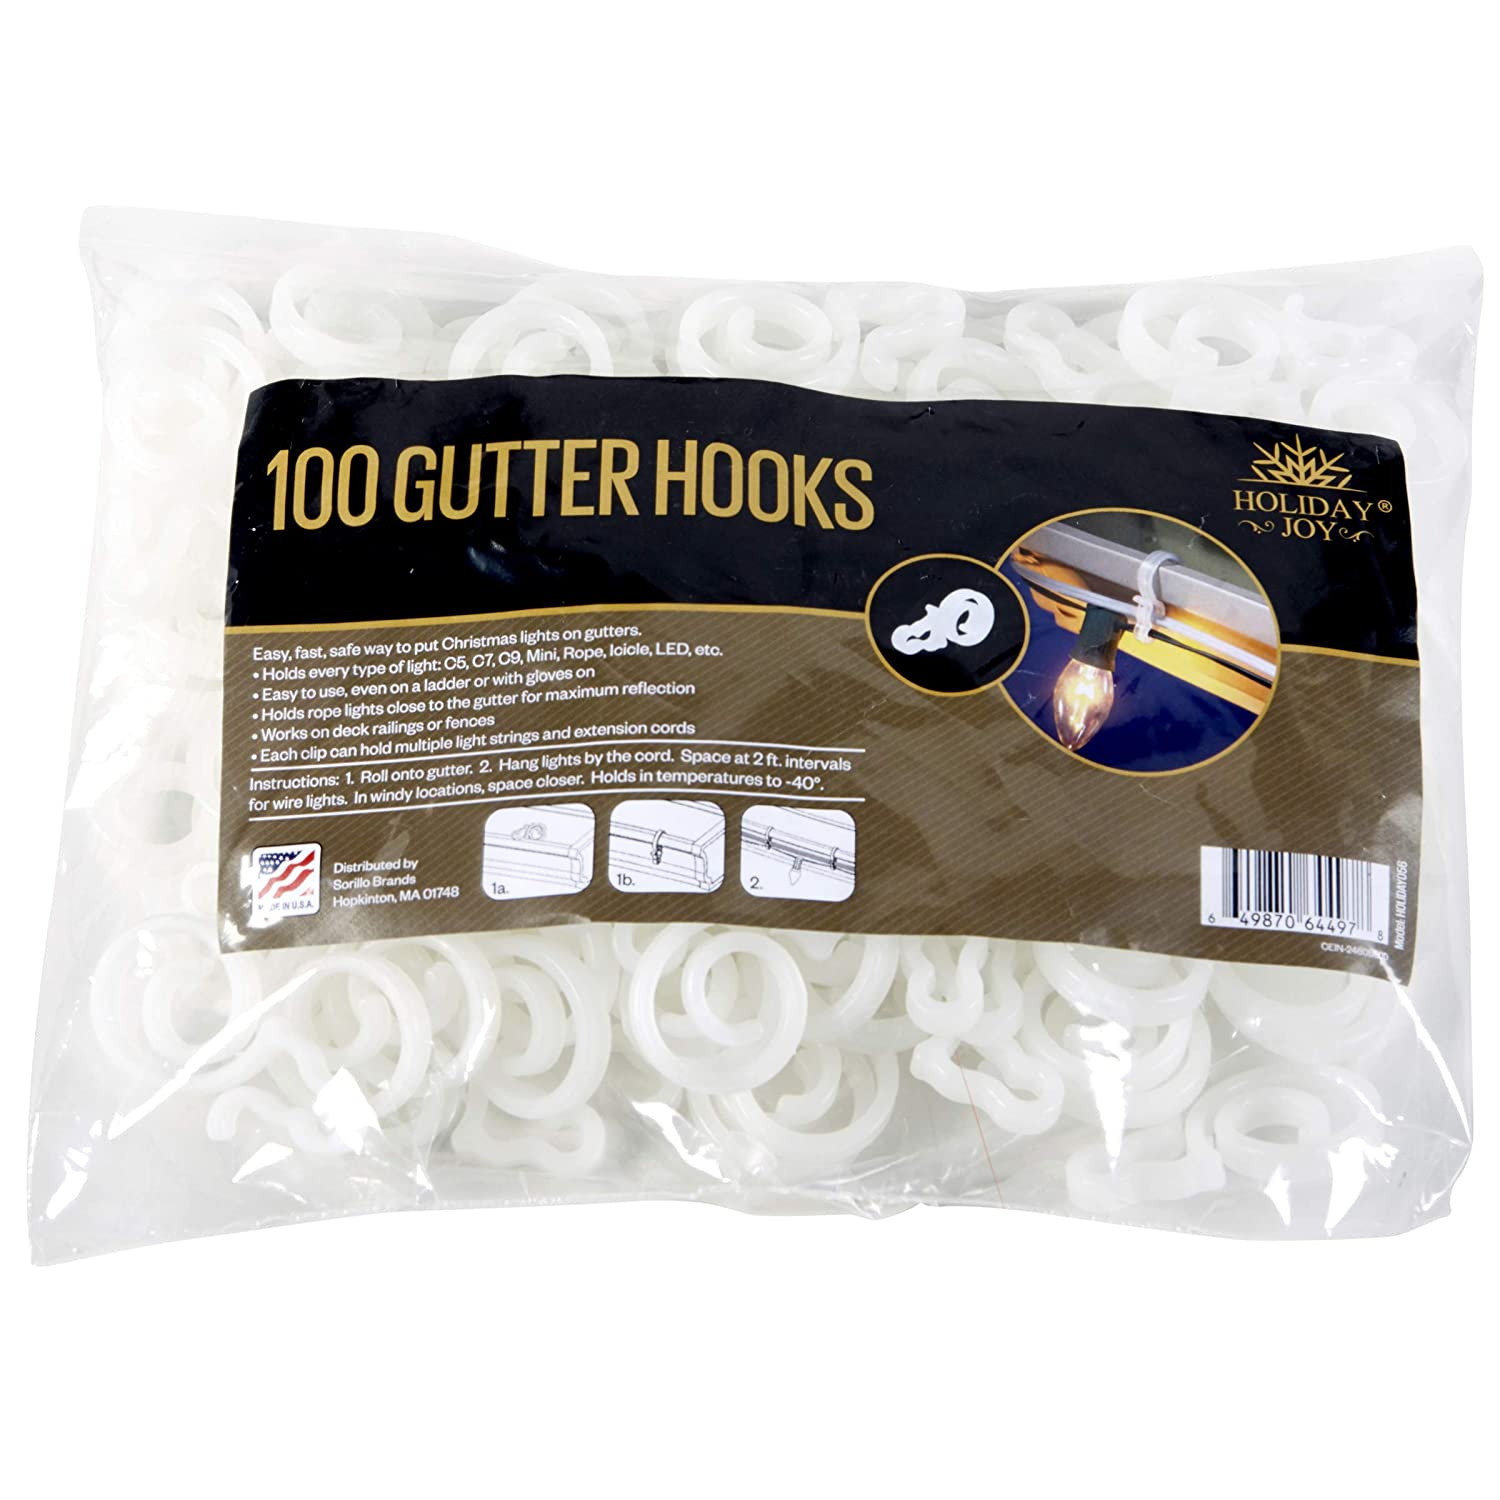 Holiday Joy - 100 Gutter Hooks - Easy & Safe Way to Put Christmas Lights on Gutters - Holds Every Type of Lights: C5, C7, C9, Mini, Rope, Icicle, LED - Made in USA Sorillo Brands